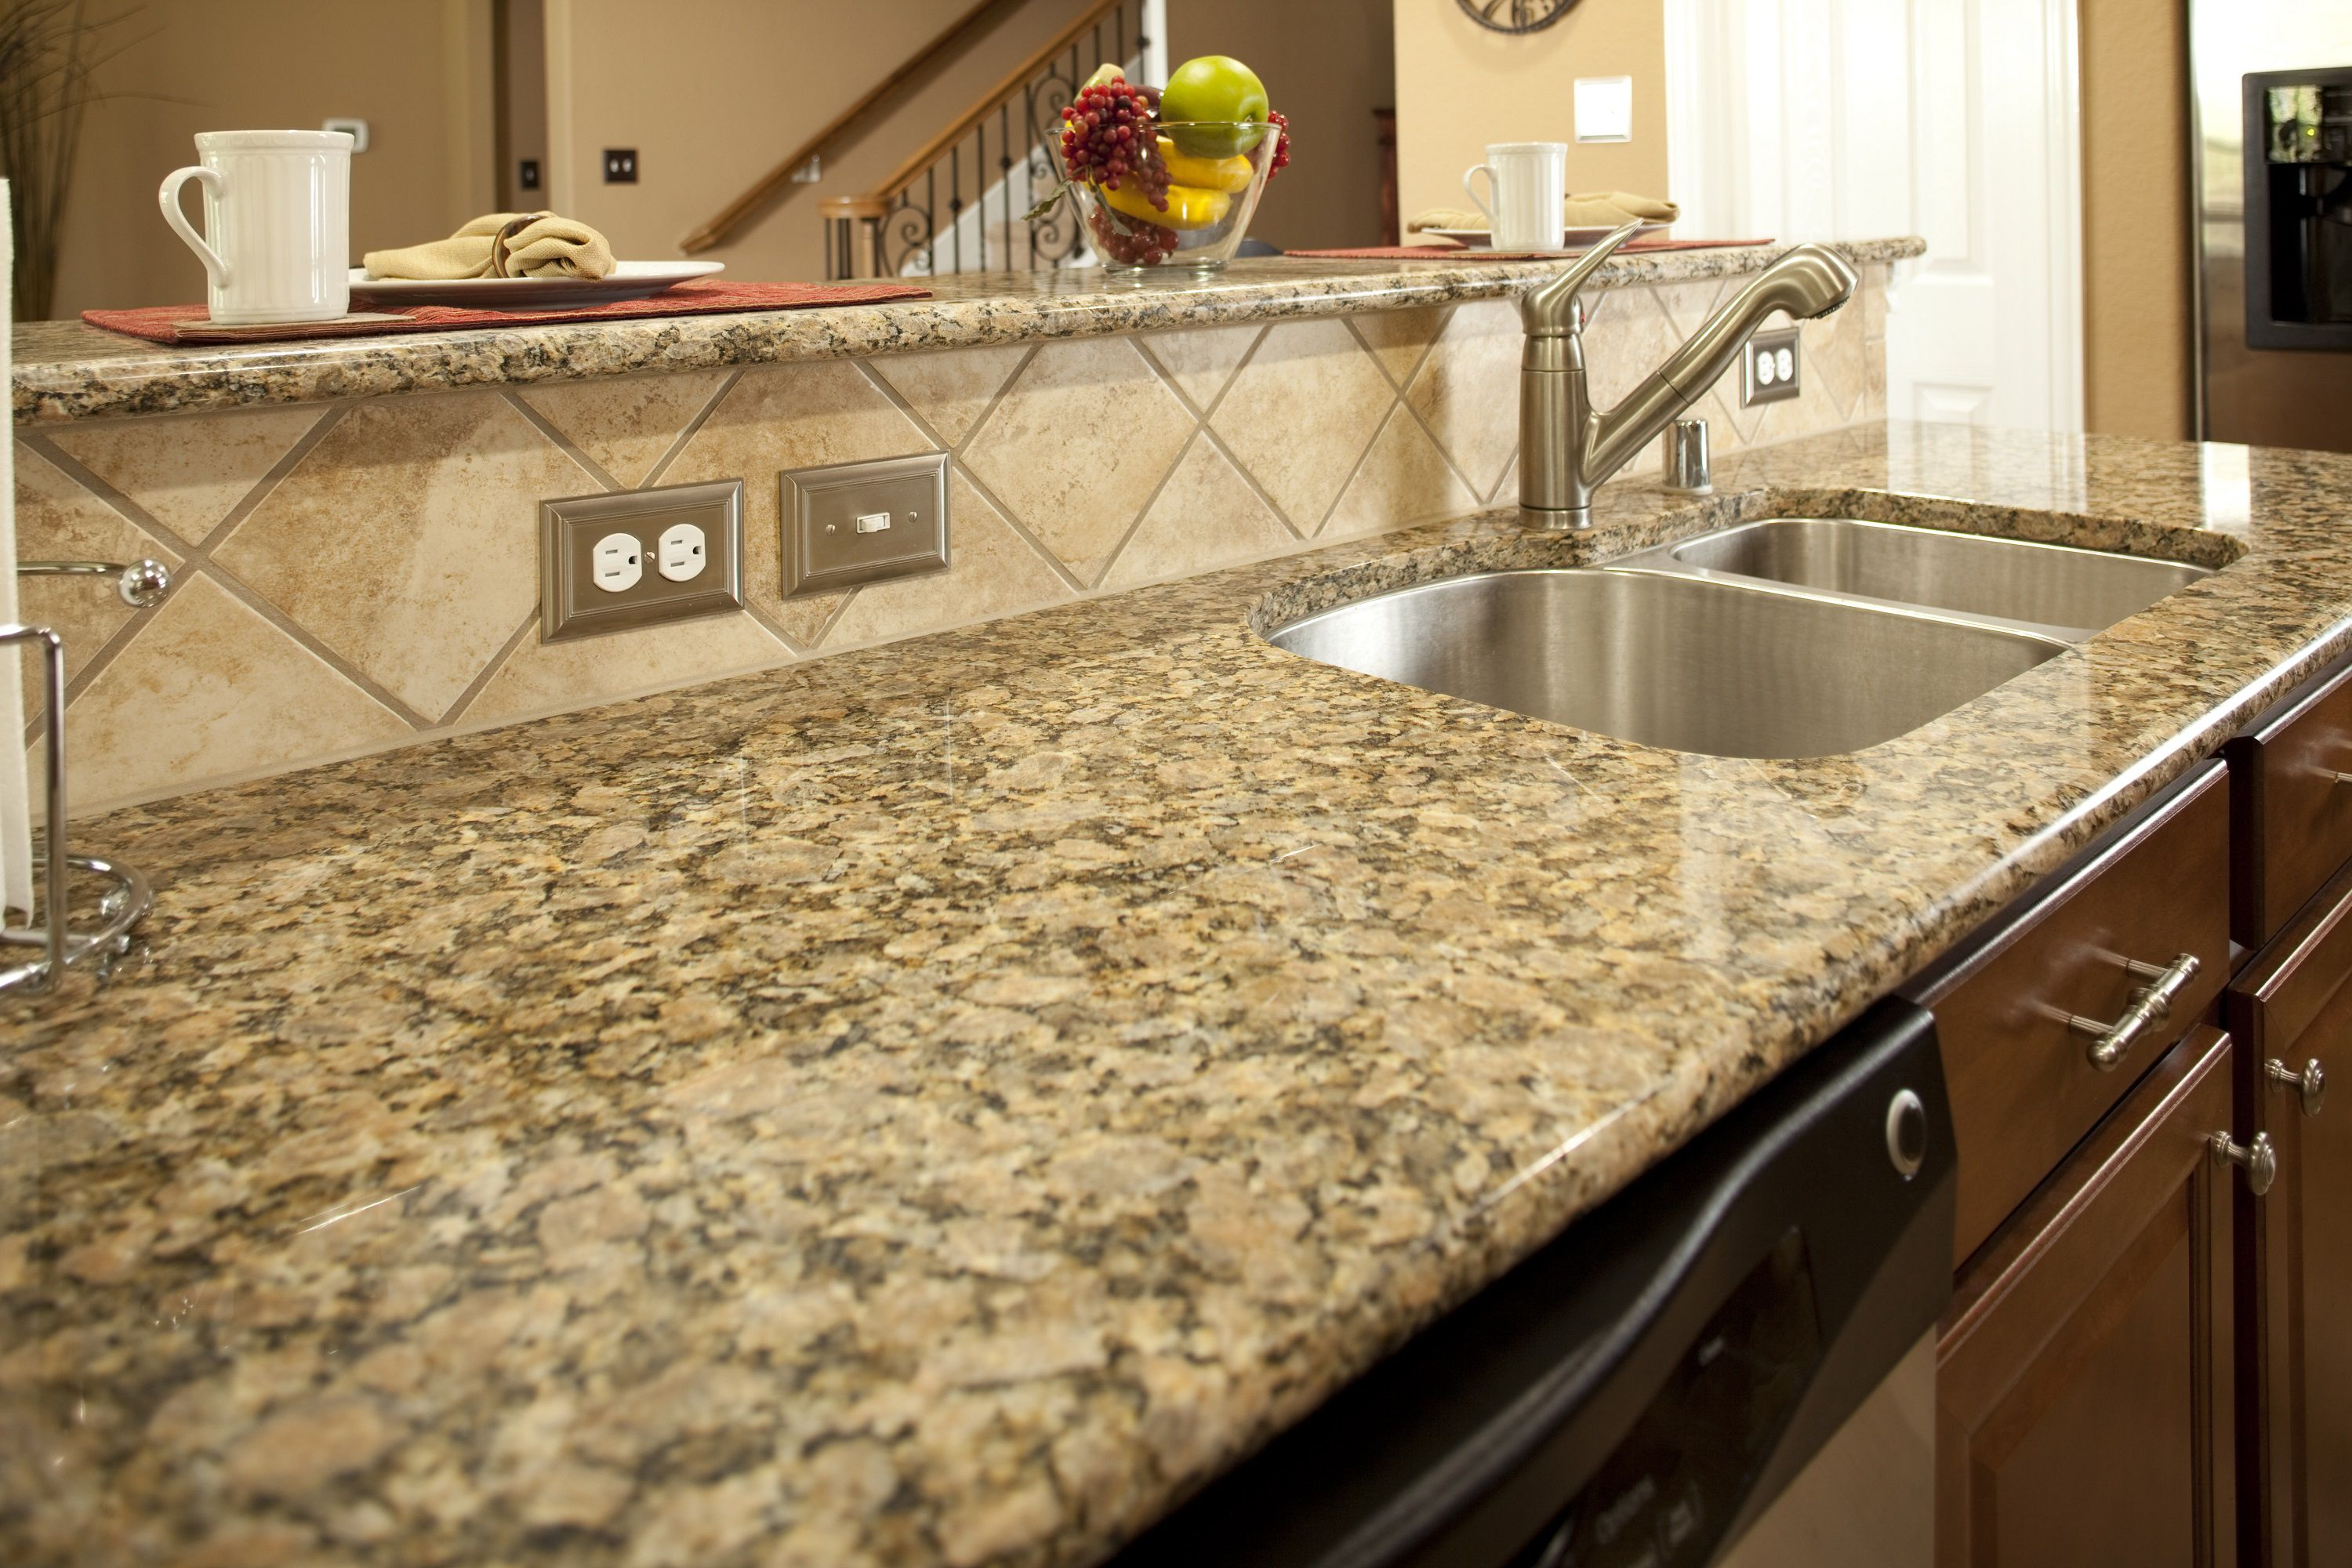 20 best bathroom quartz countertops mages on pnterest.htm can granite countertops cause cancer  can granite countertops cause cancer